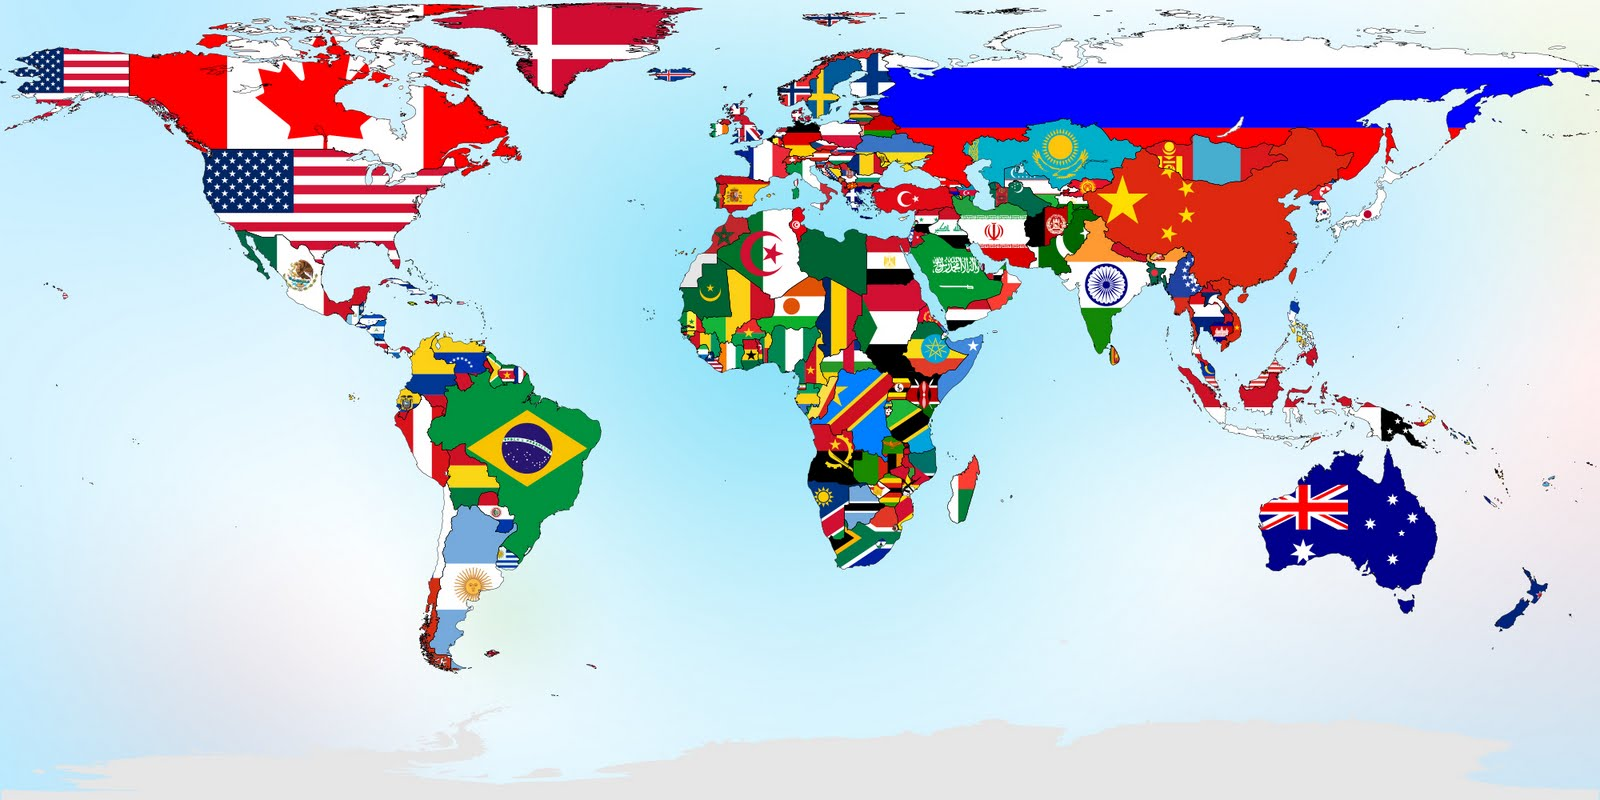 World_Flag_Map_hd_wallpapers_wall_2012_httpmapwallpapers